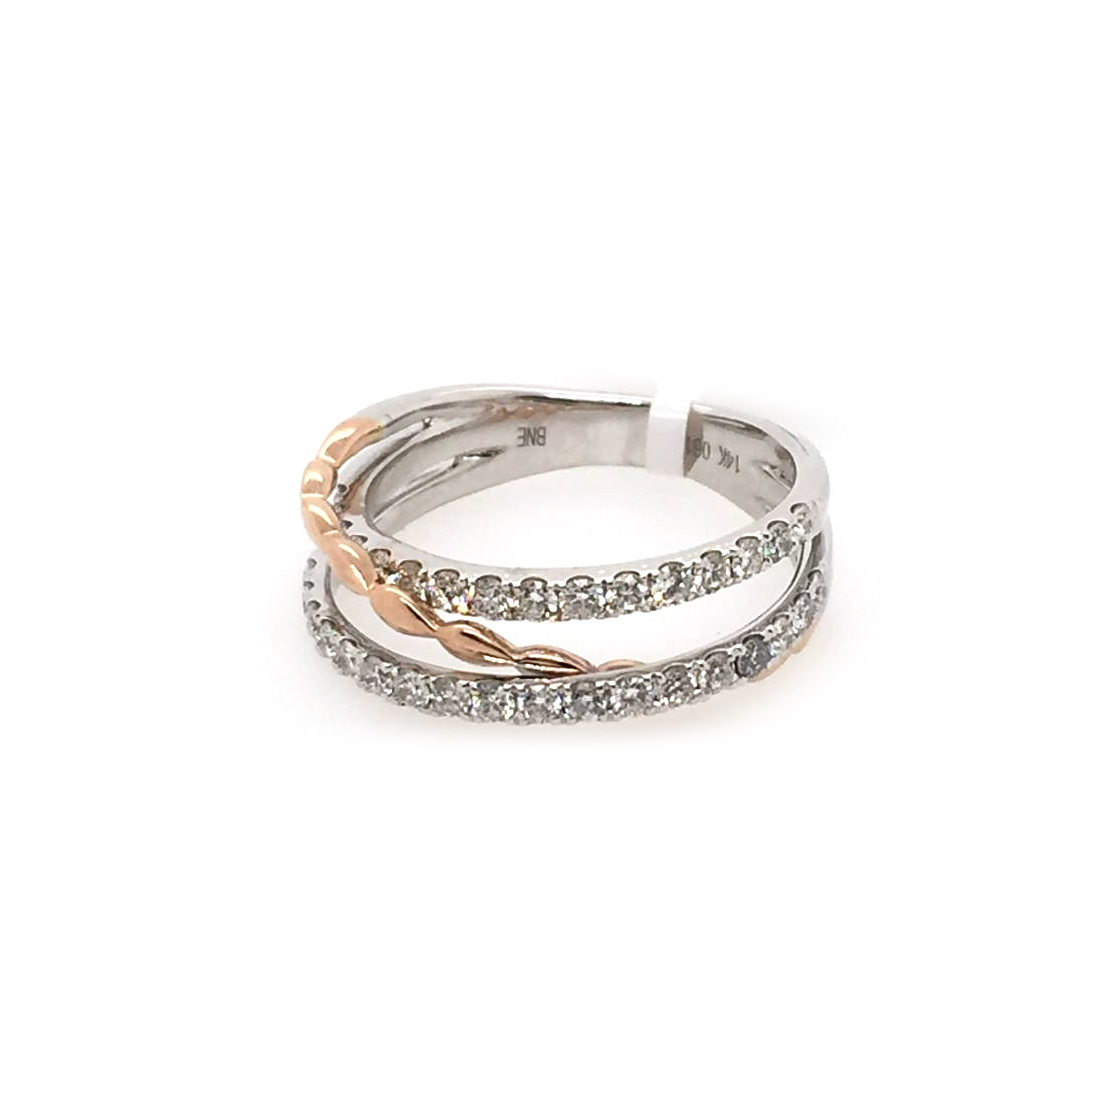 14 Karat White and Rose Gold Diamond Crossover Ring